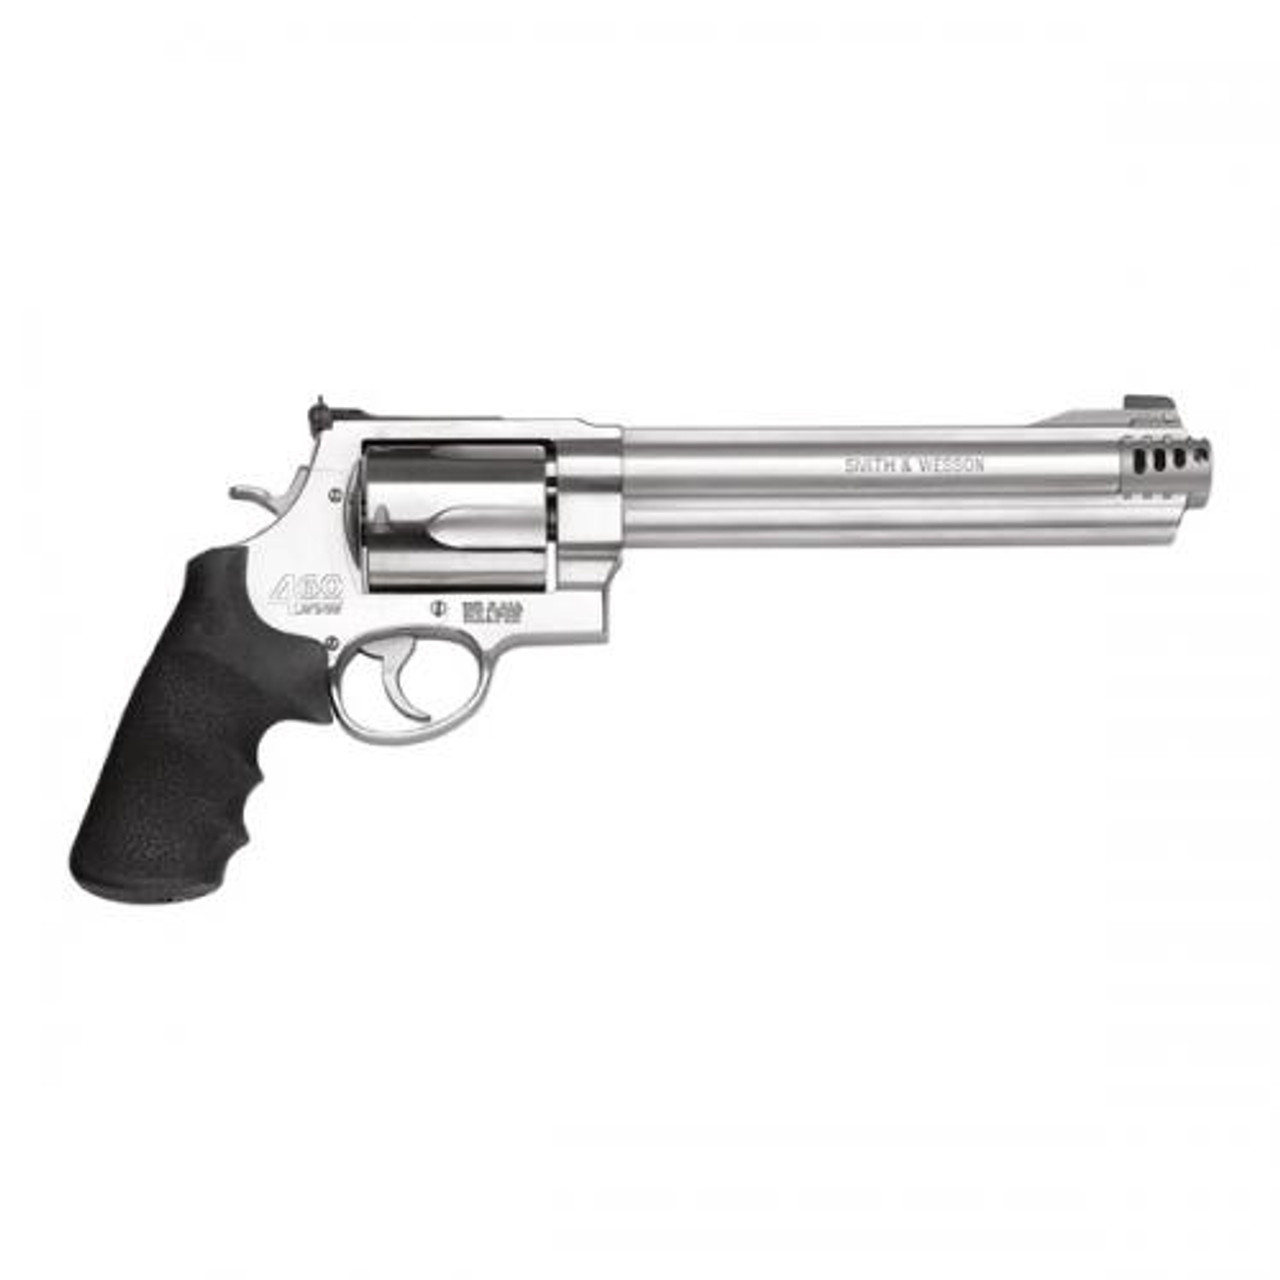 """Smith & Wesson 460XVR Stainless Steel, 8.38"""" Barrel .460 S&W Magnum"""